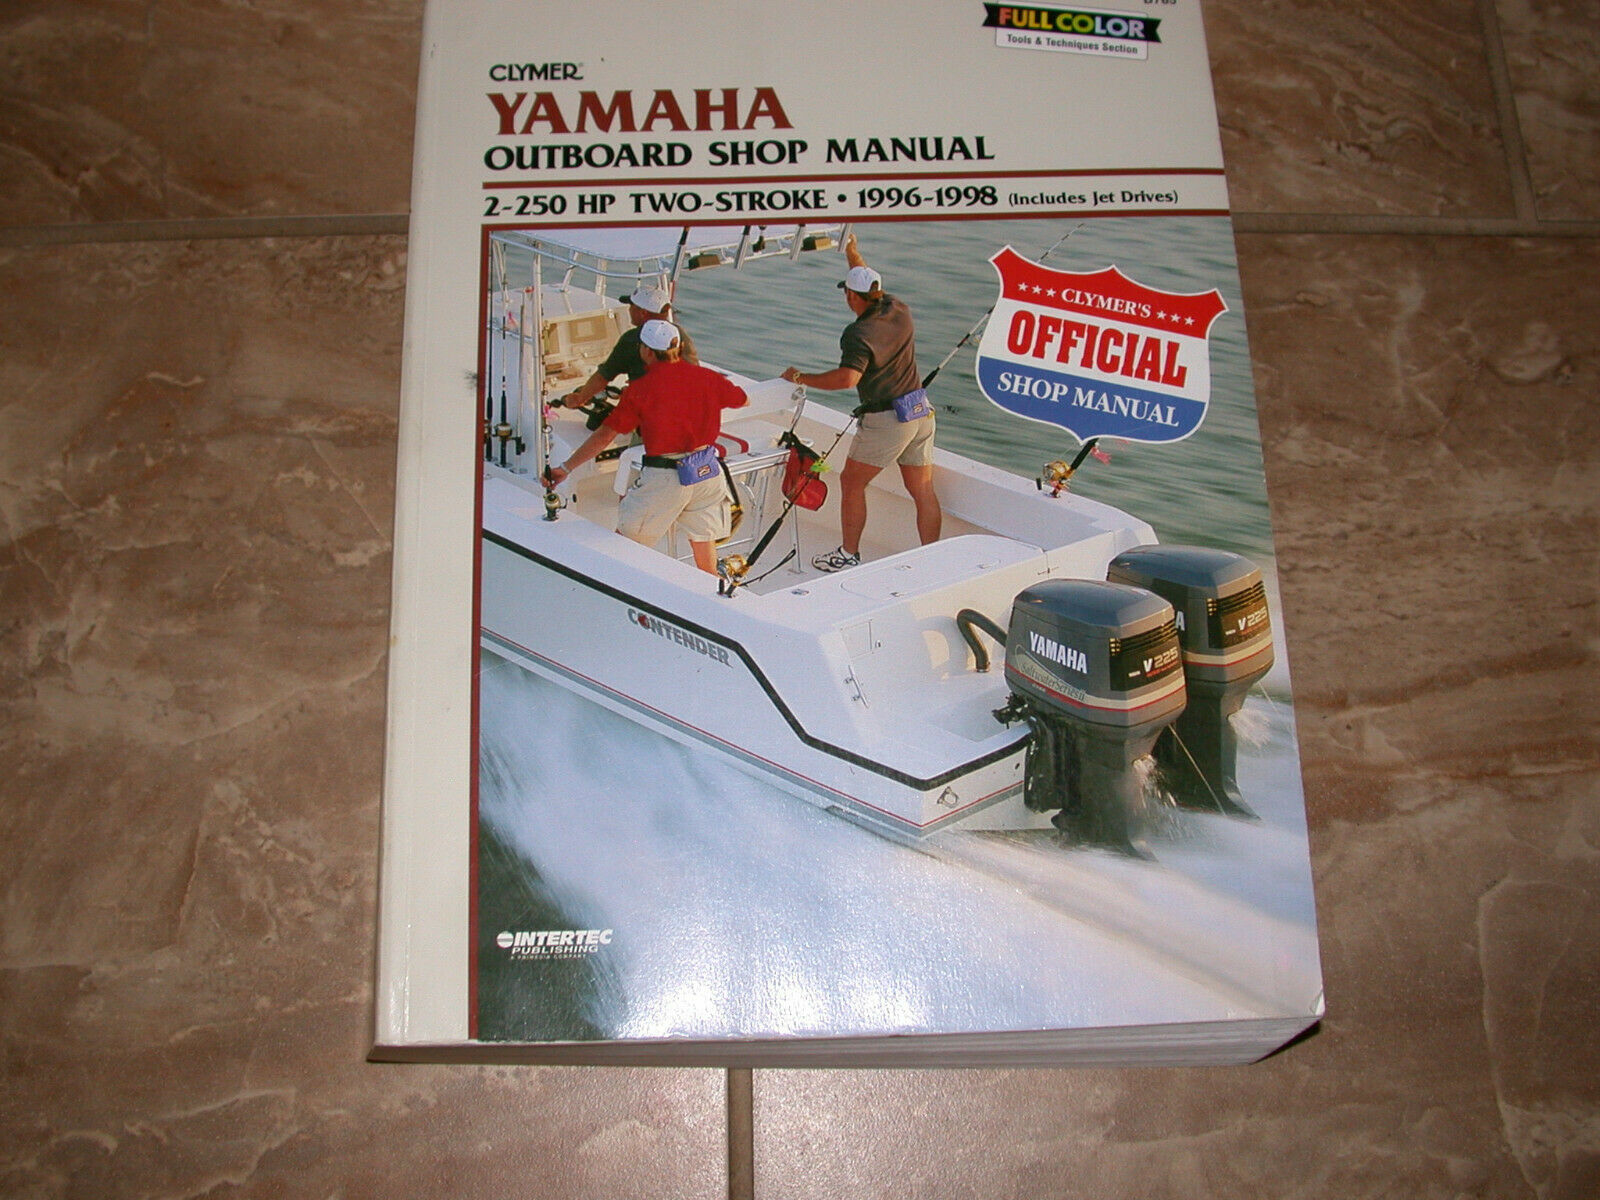 1996-1998 YAMAHA OUTBOARD SHOP MANUAL BY CLYMER 2-250 HP